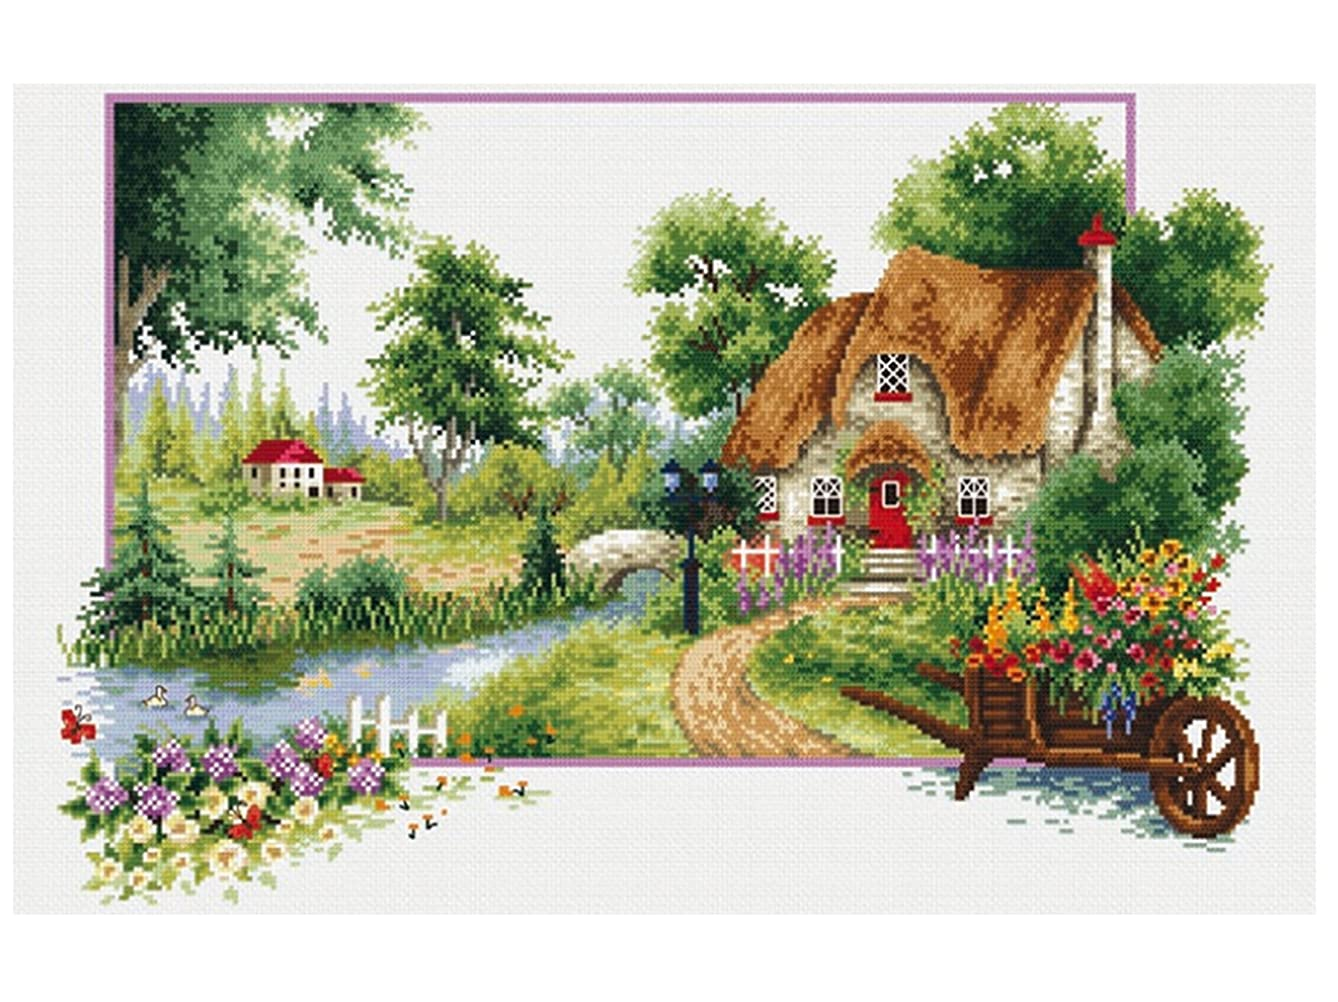 TINMI ATRS DIY Stamped Cross Stitch Landscape Kits Thread Needlework Embroidery Printed Pattern 11CT Home Decoration Four Seasons (Summer Perfume, 27x19 inch)